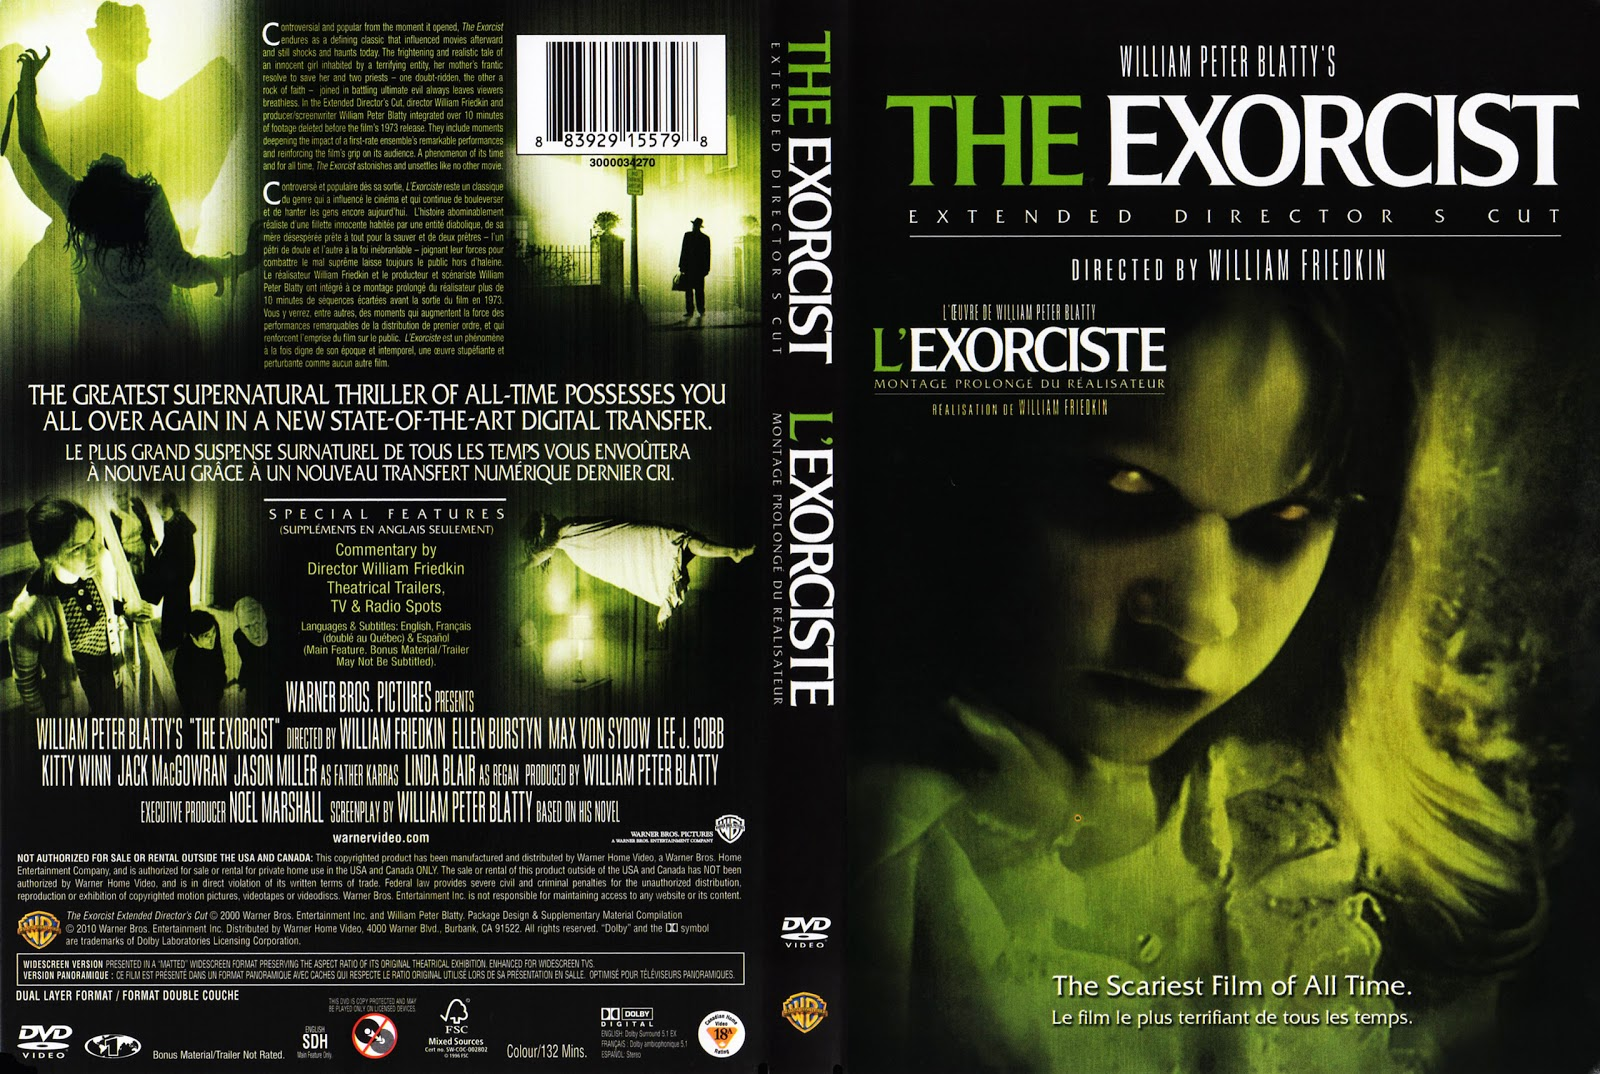 The exorcist movie online free